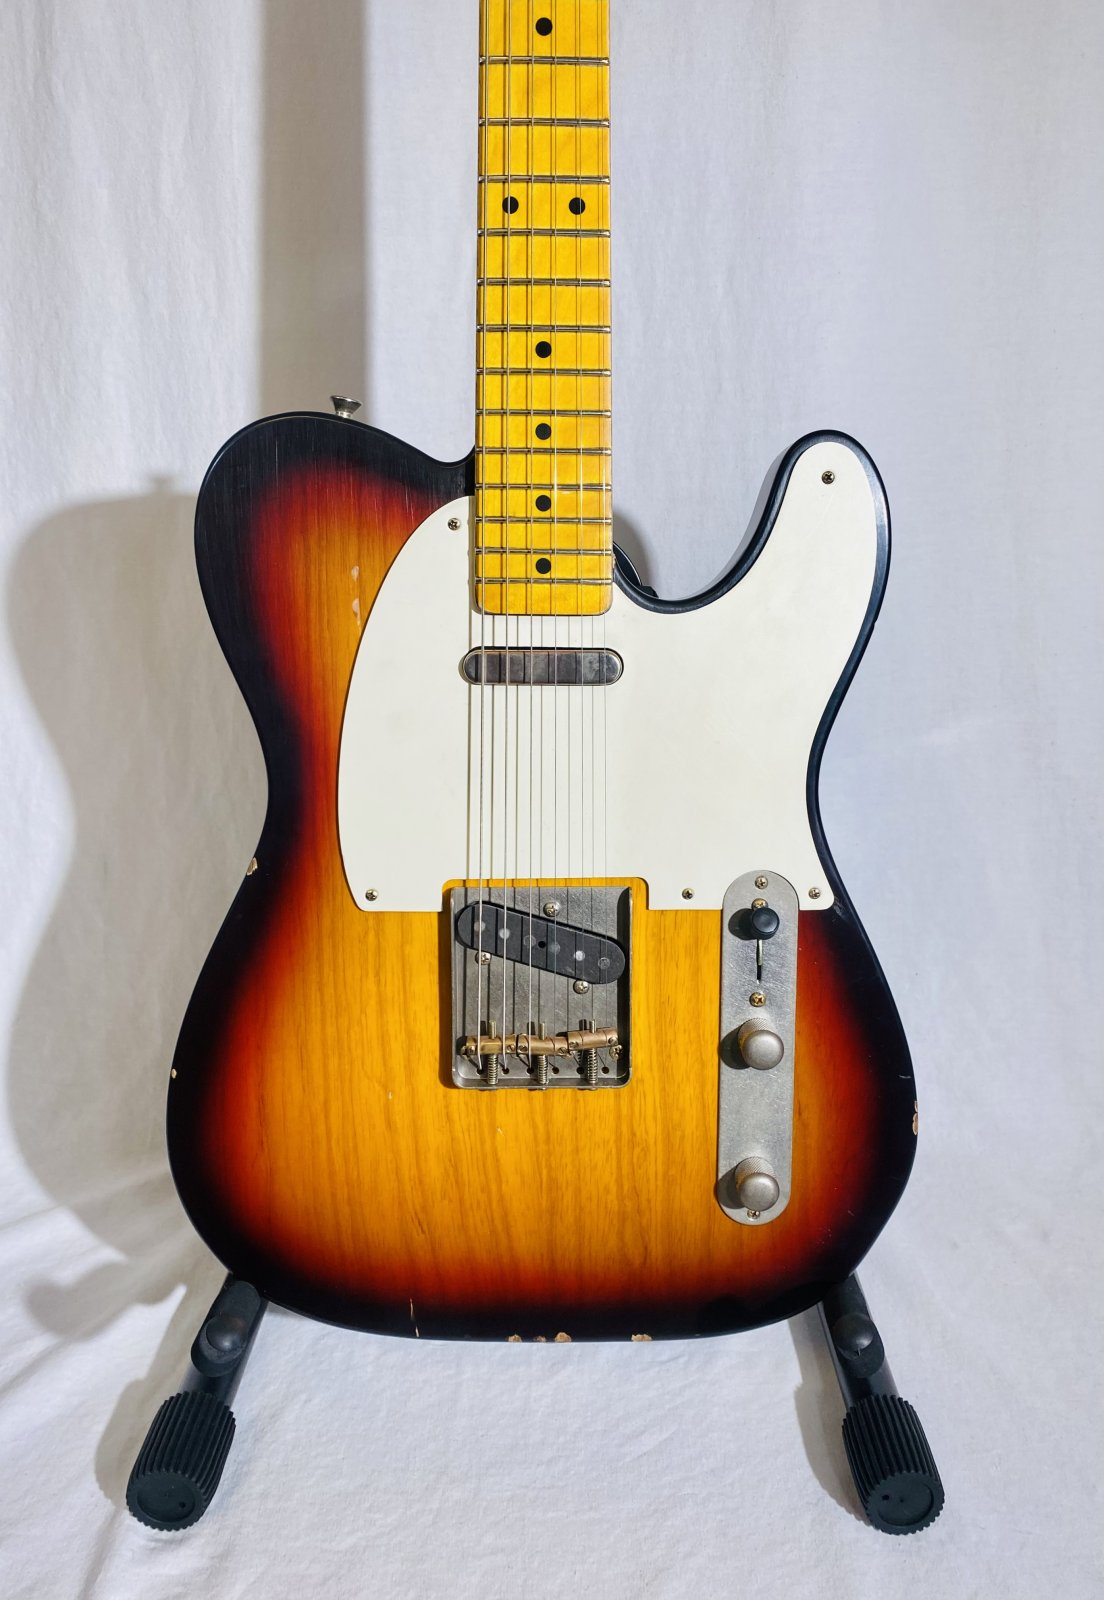 NASH T57 TELECASTER ELECTRIC GUITAR WITH HARD CASE